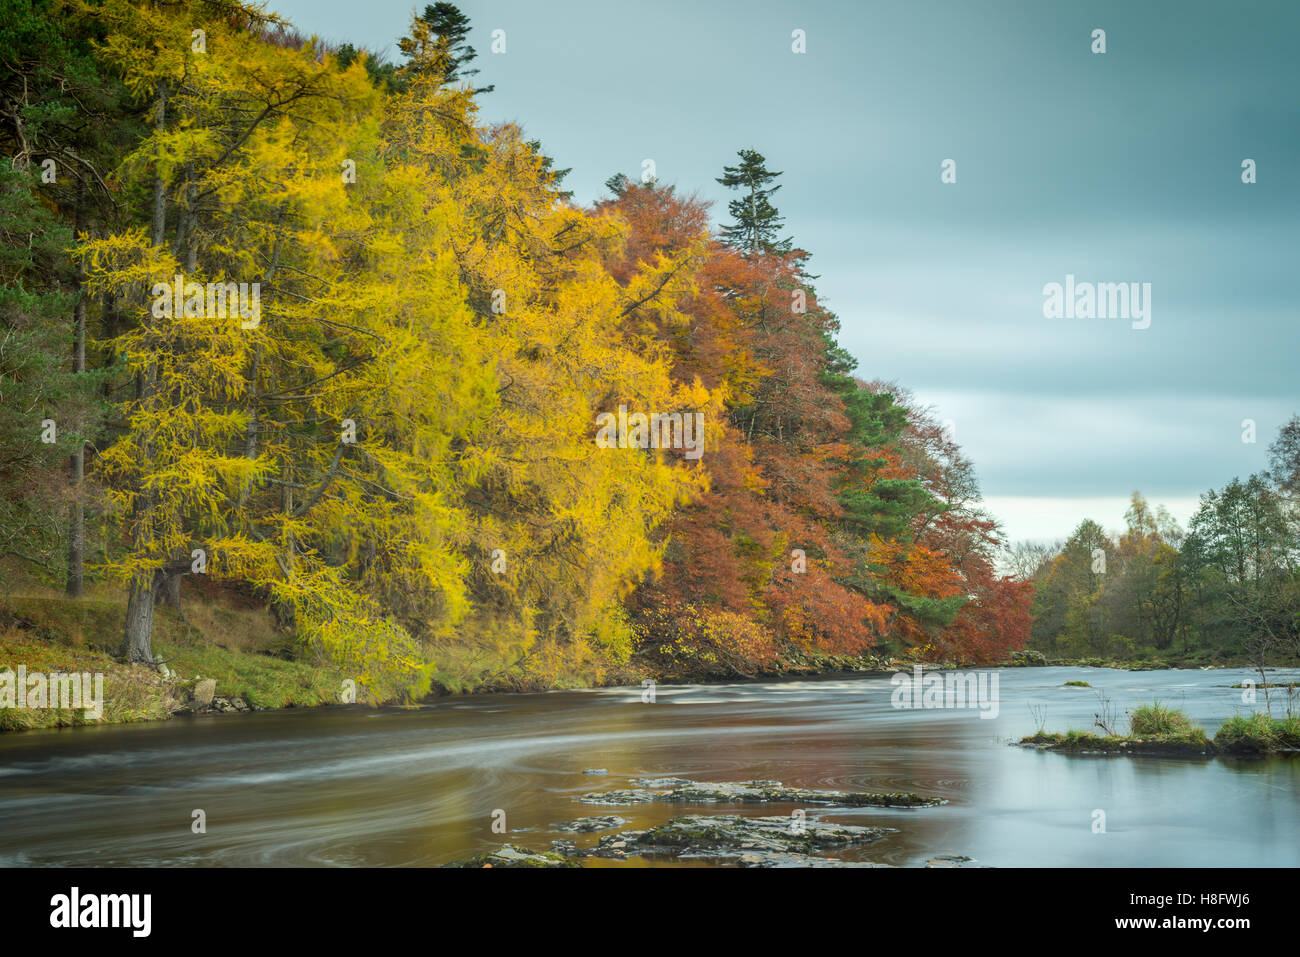 The River Tees in Autumn - Stock Image